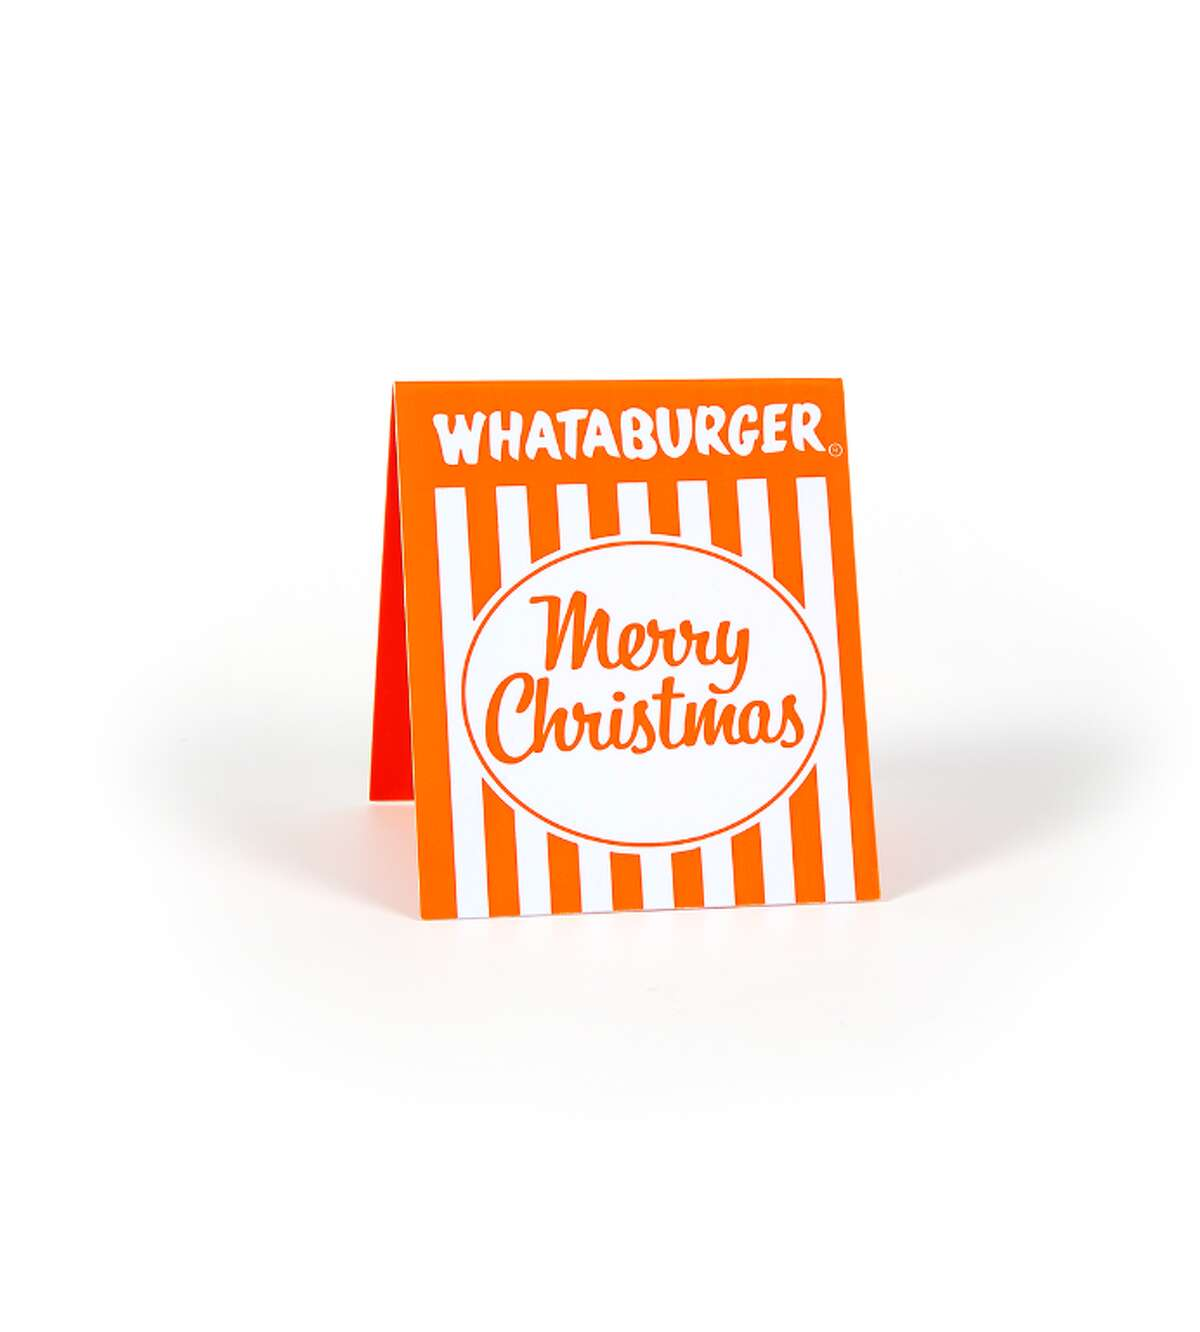 Whataburger has special holiday-themed items now for sale at their online store.